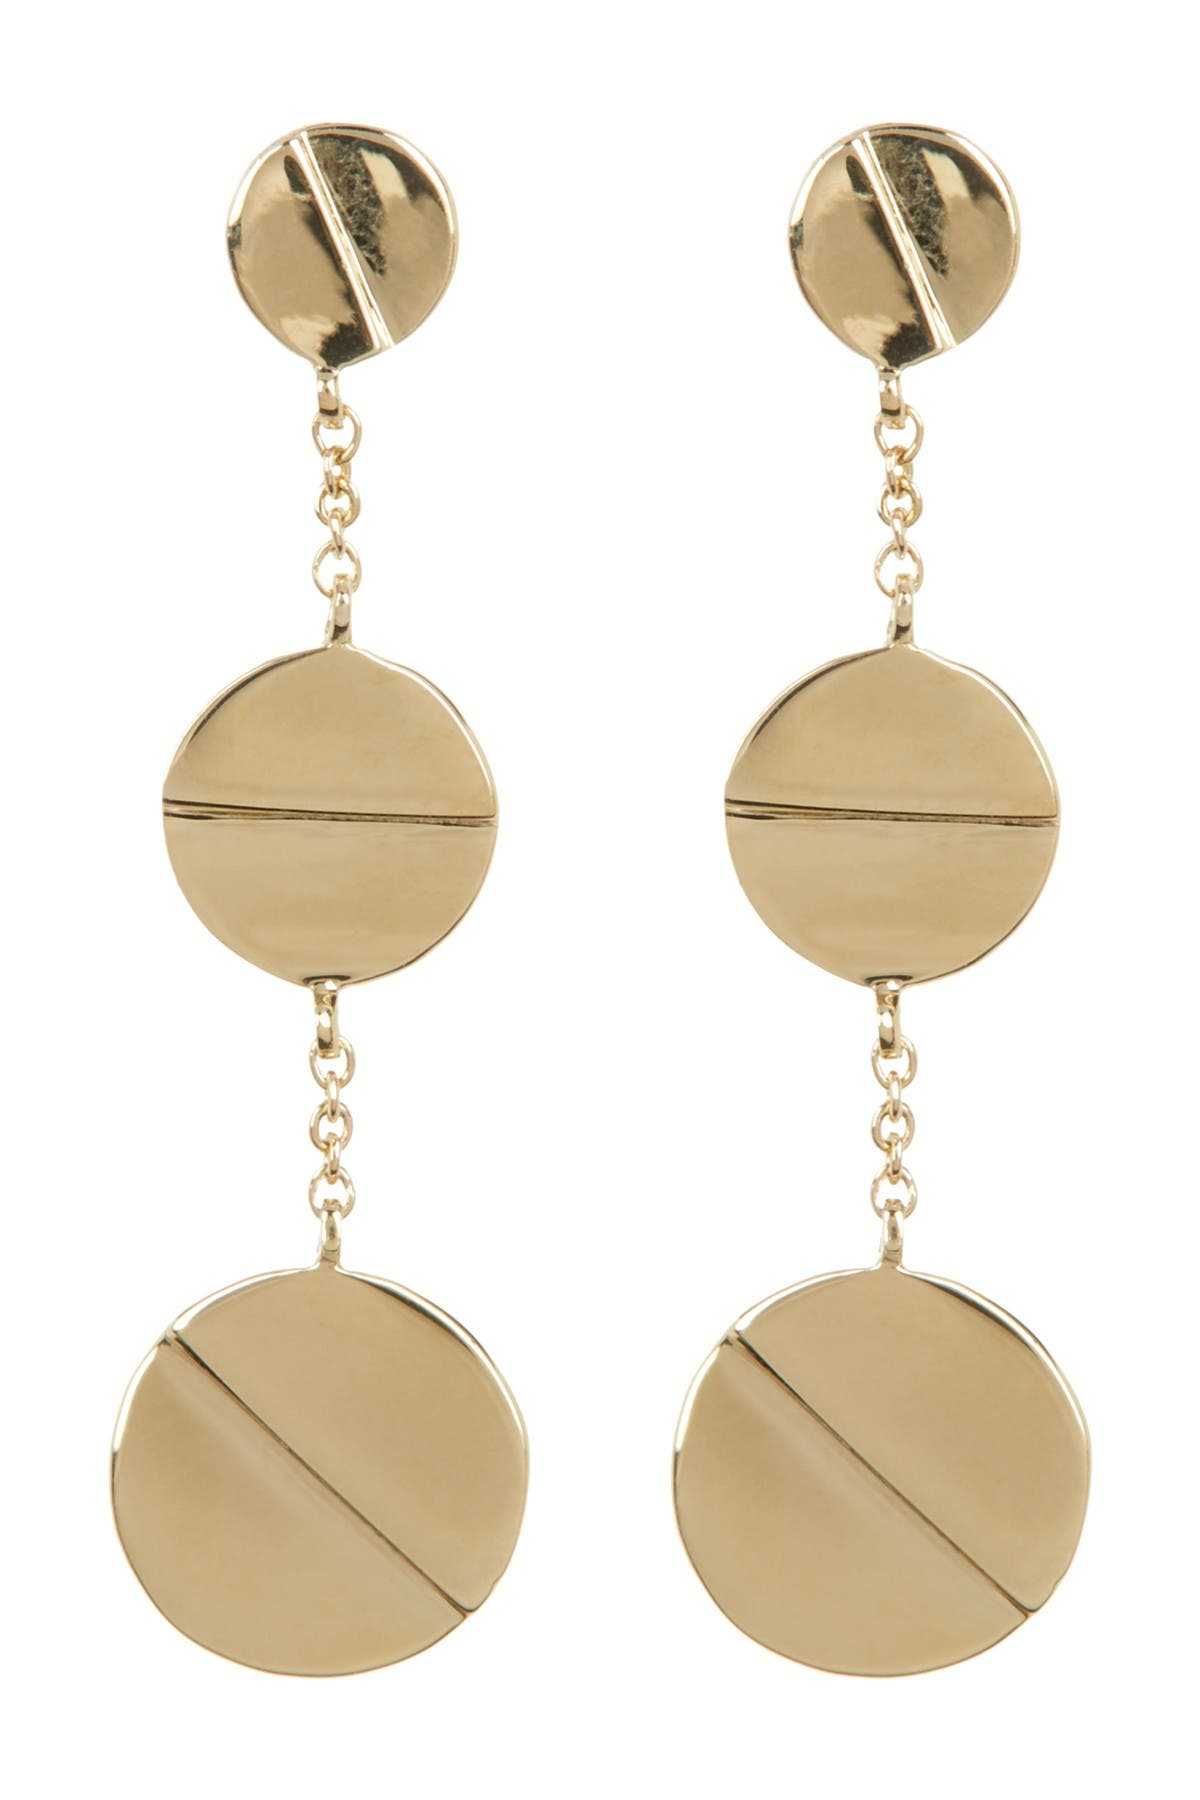 Image of Bony Levy 14K Yellow Gold Etched Circle Triple Drop Earrings